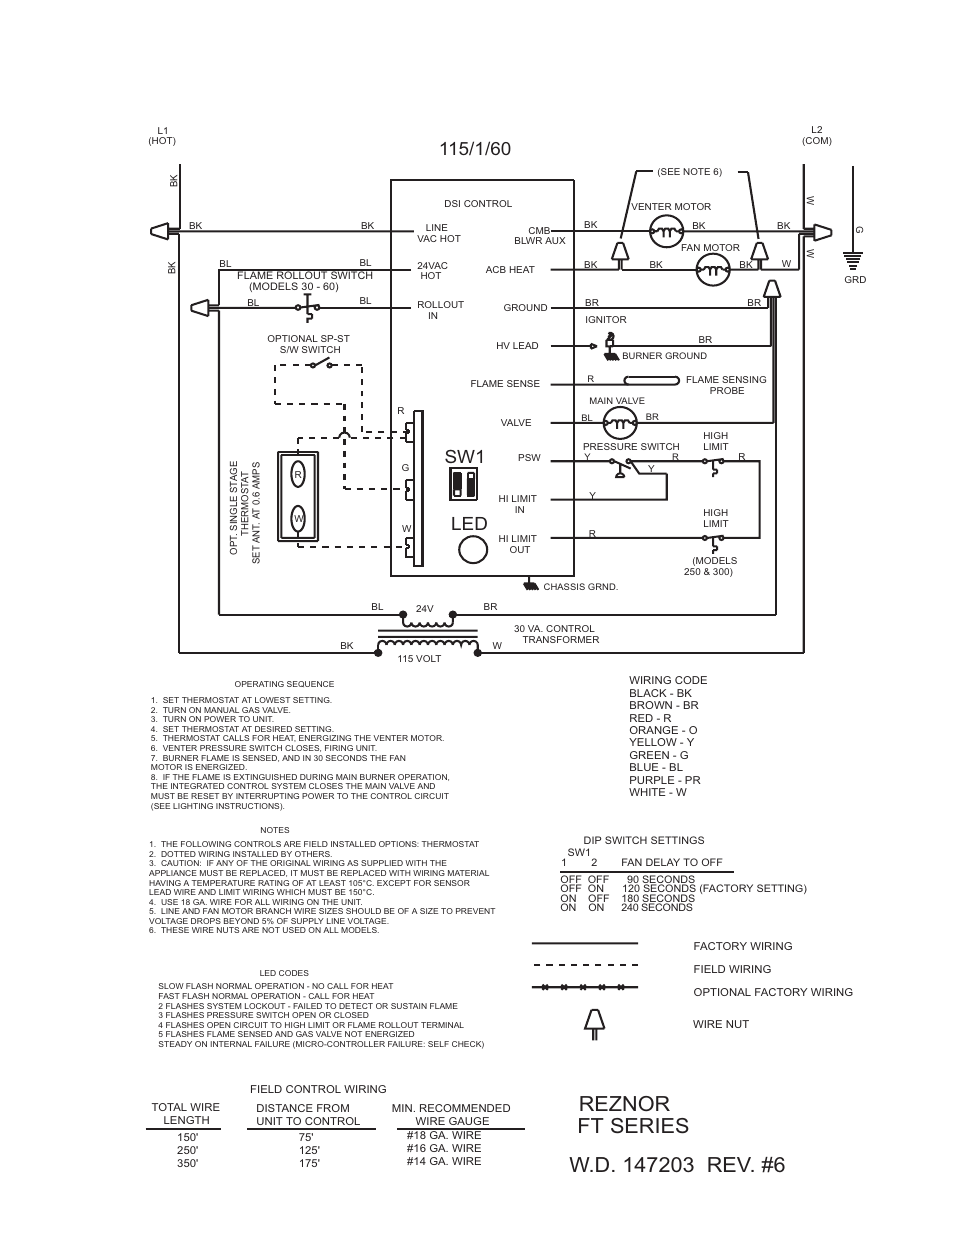 Modine Pdp Wiring Diagram - Somurich.com on tempstar thermostat wiring, comfortmaker thermostat wiring, gibson thermostat wiring, robertshaw thermostat wiring, whirlpool thermostat wiring, nordyne thermostat wiring, reznor thermostat wiring, bard thermostat wiring, siemens thermostat wiring, luxaire thermostat wiring, miller thermostat wiring, general thermostat wiring, arcoaire thermostat wiring, amana ptac thermostat wiring, venstar thermostat wiring, aprilaire thermostat wiring, ge thermostat wiring, lennox thermostat wiring, heil thermostat wiring, american standard thermostat wiring,